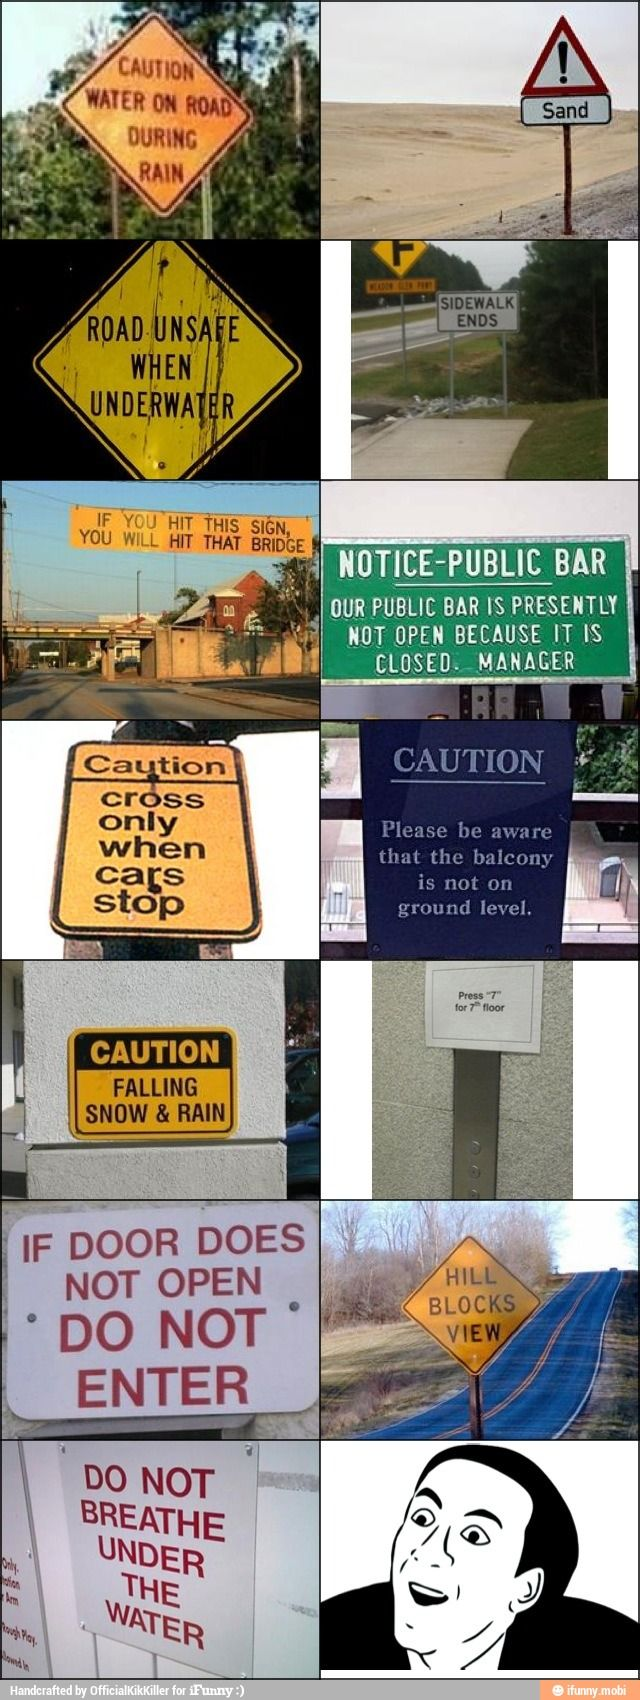 The fact that someone needed these signs makes me sad